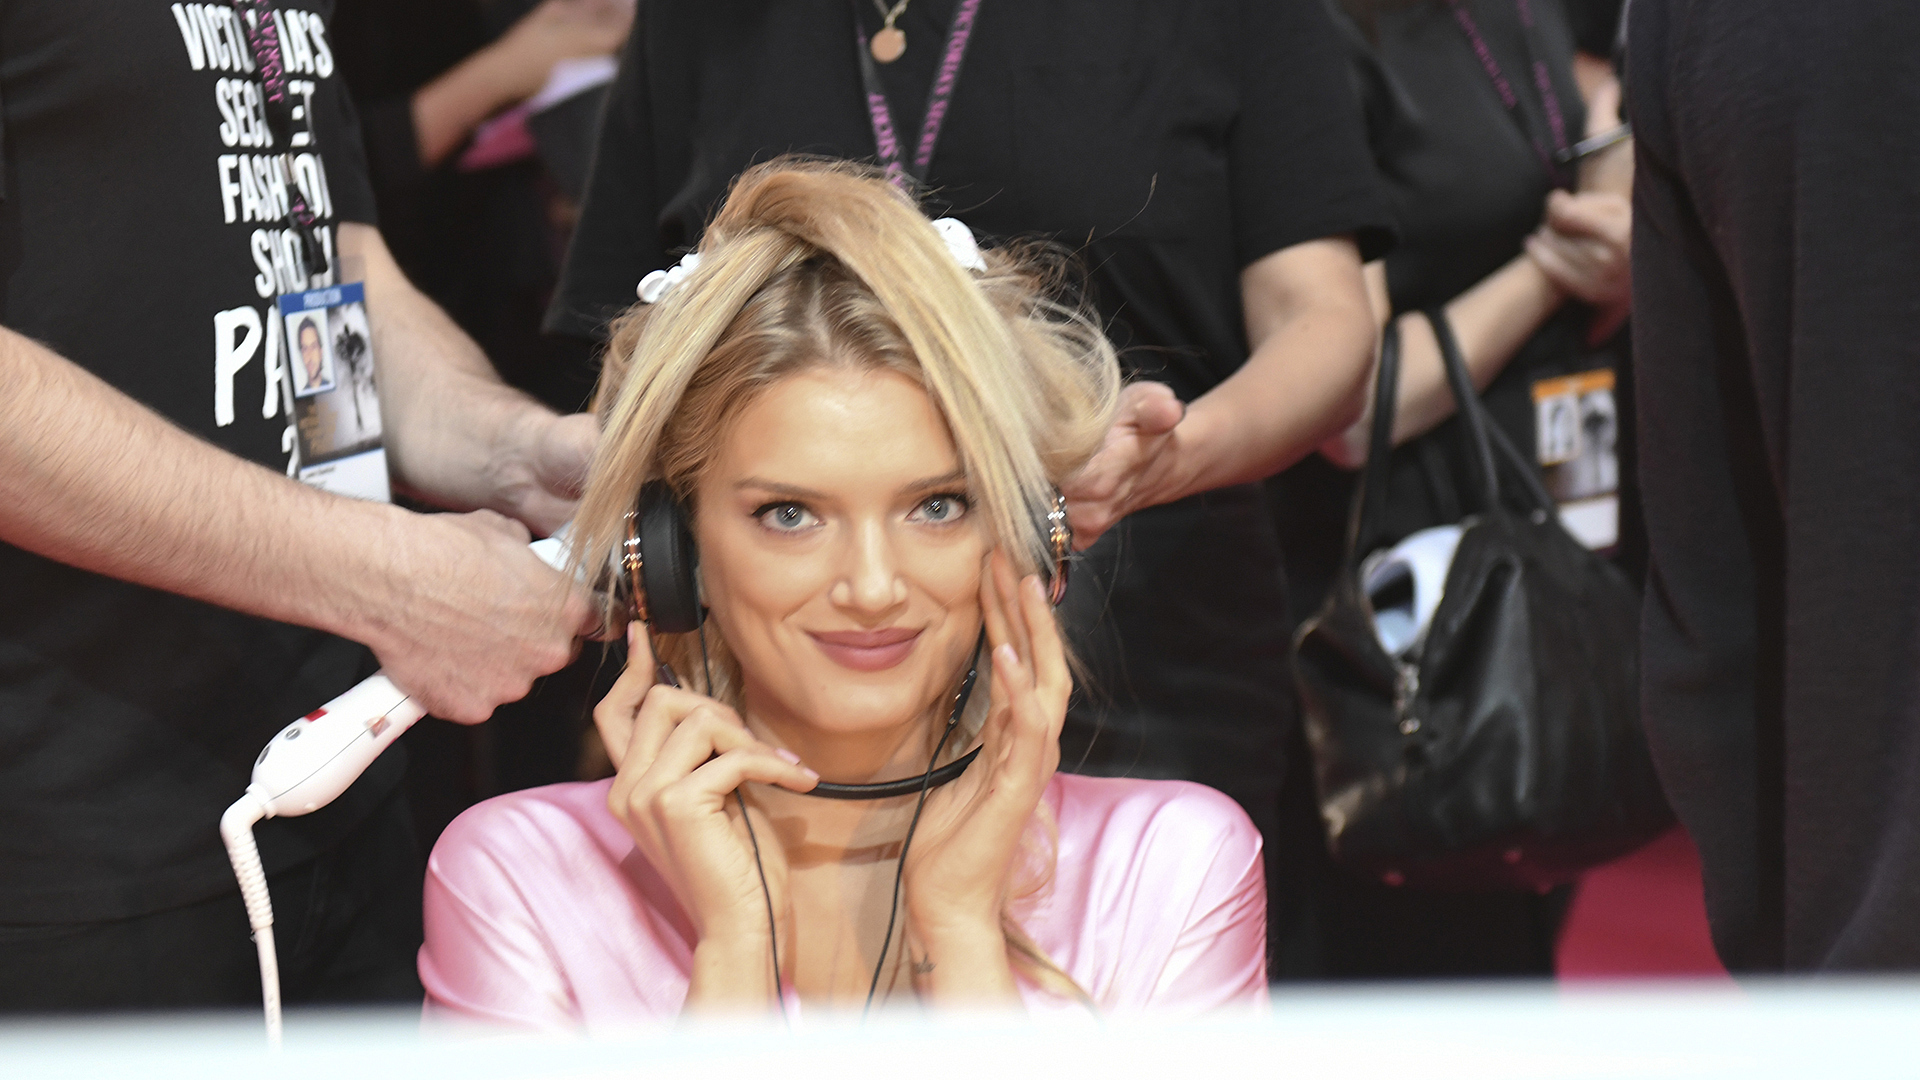 Lily Donaldson gets amped up with some tunes before curtain call.